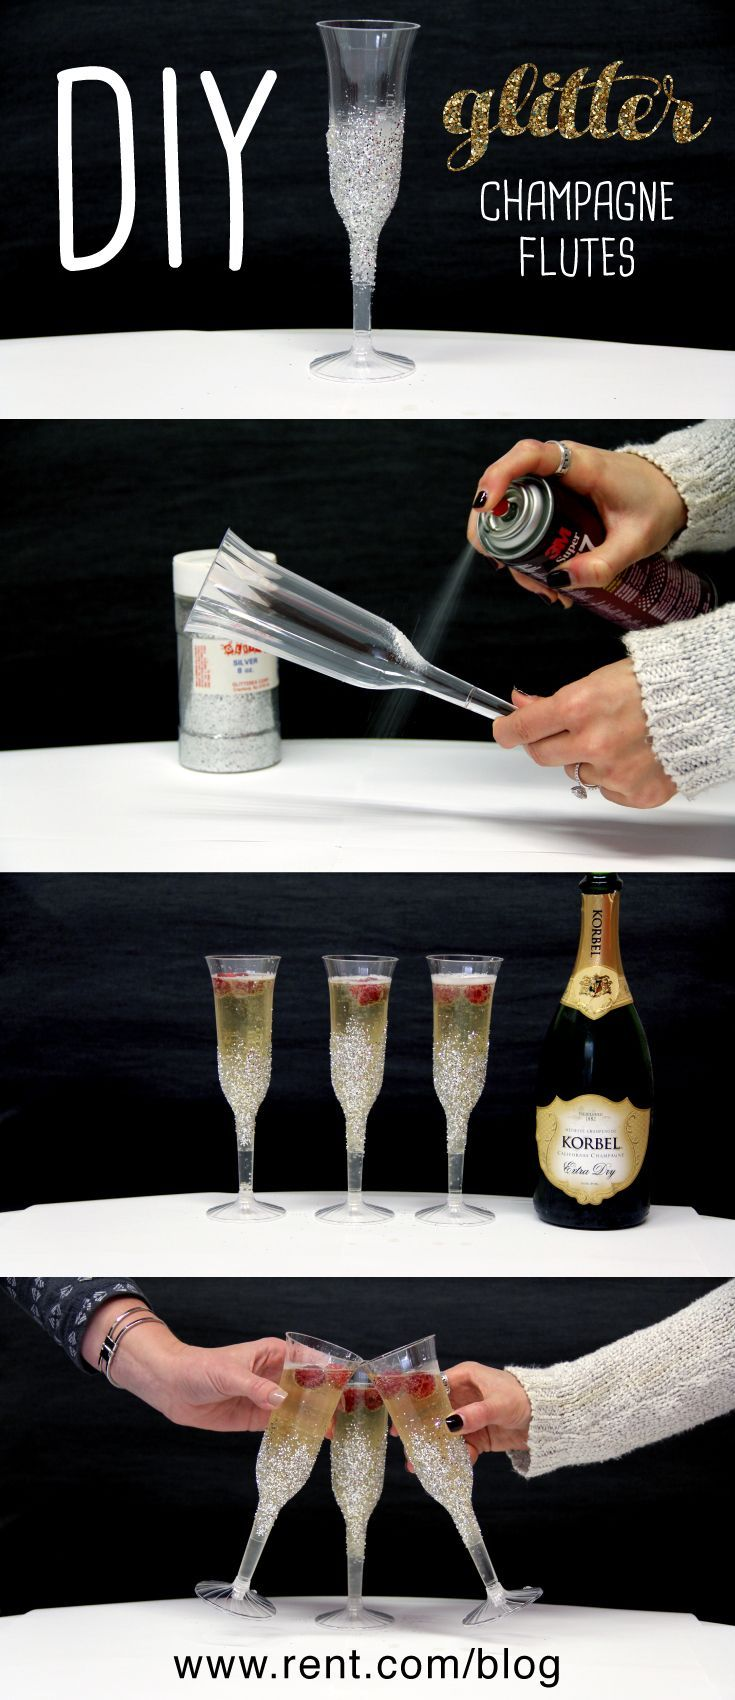 Looking for an easy way to make your holiday party a little fancier? Check out these festive and affordable glitter champagne flutes!